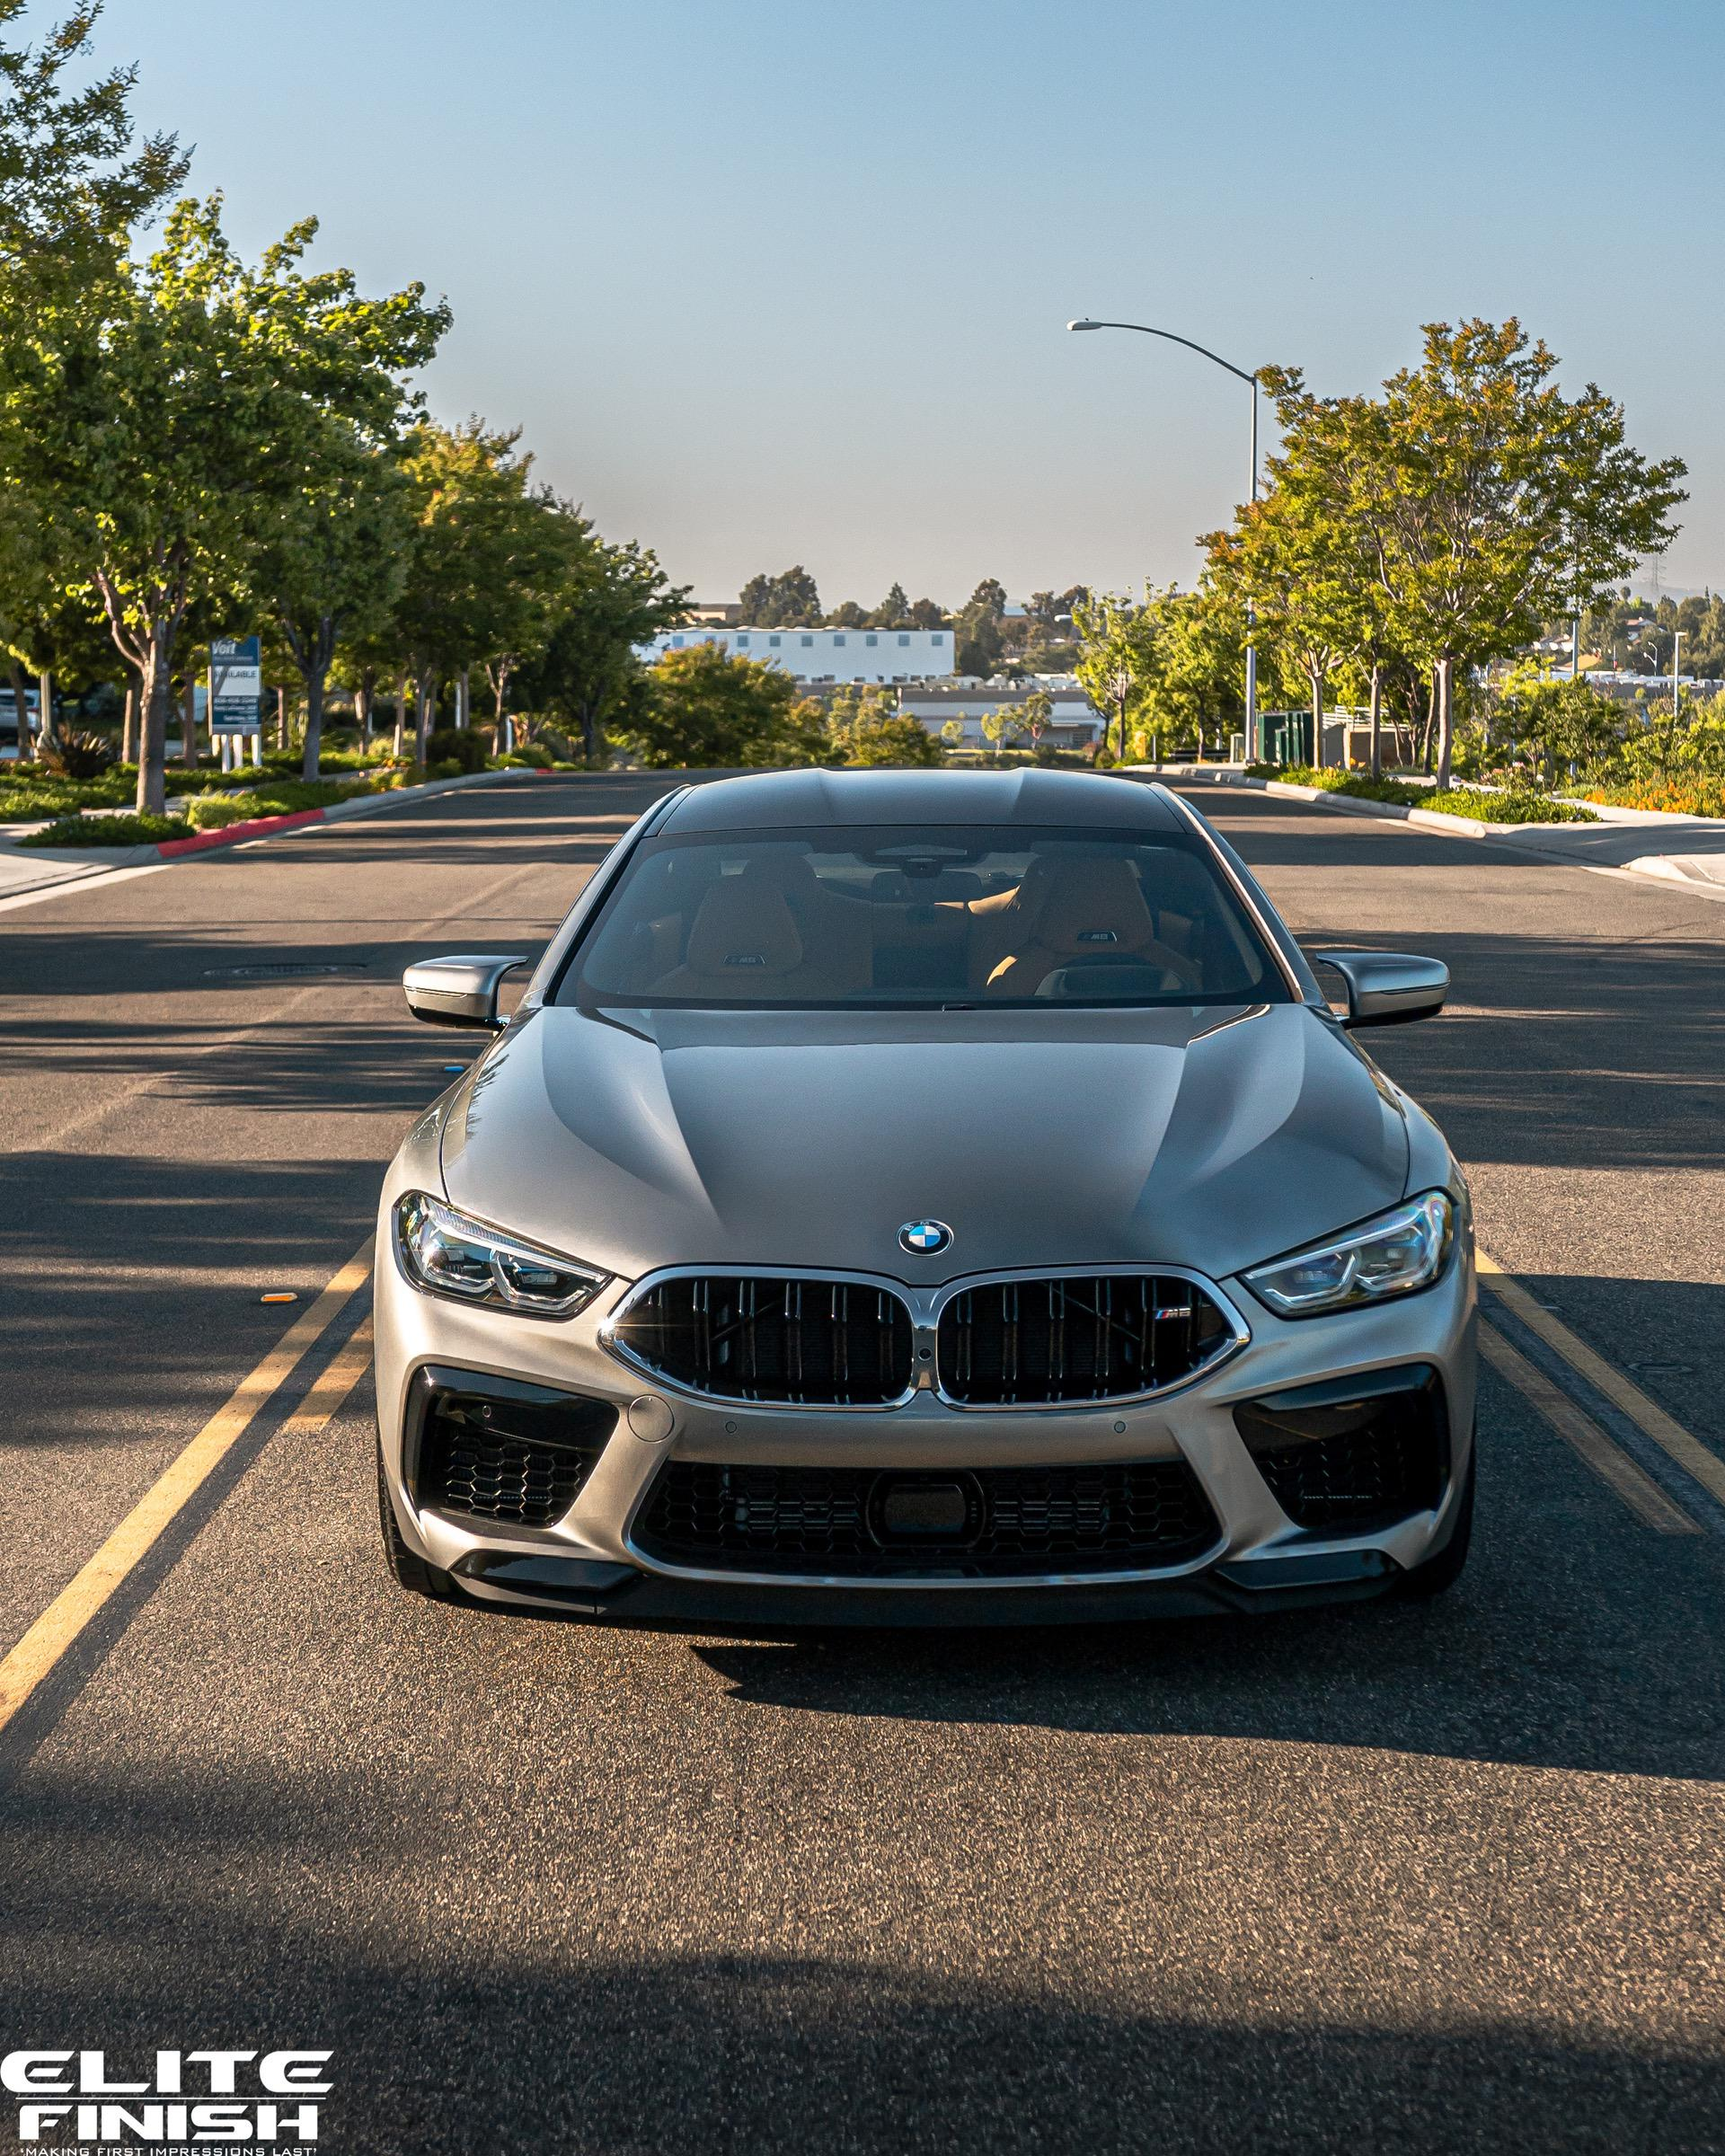 2020 Bmw M8 Red: Stunning BMW M8 Gran Coupe In Donington Grey Metallic Over